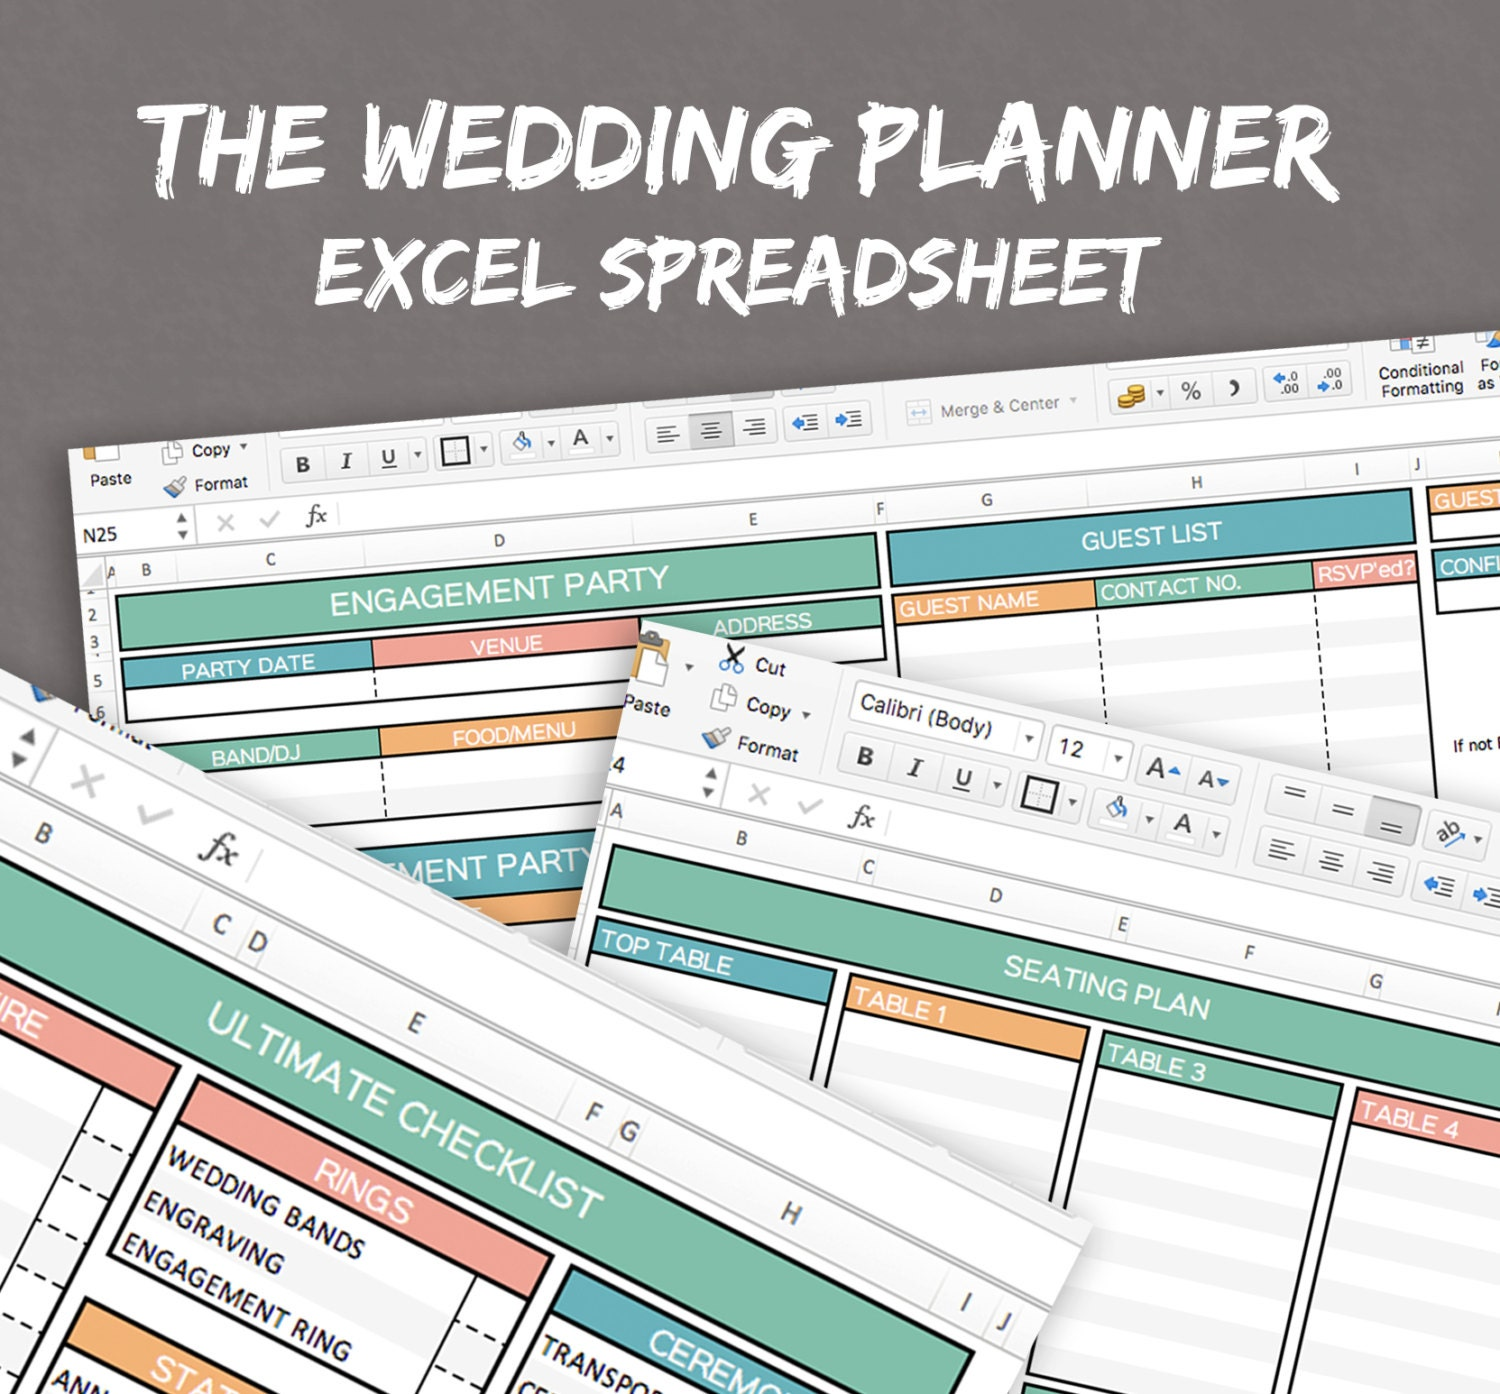 Wedding Planner Spreadsheet excel wedding planner organise | Etsy